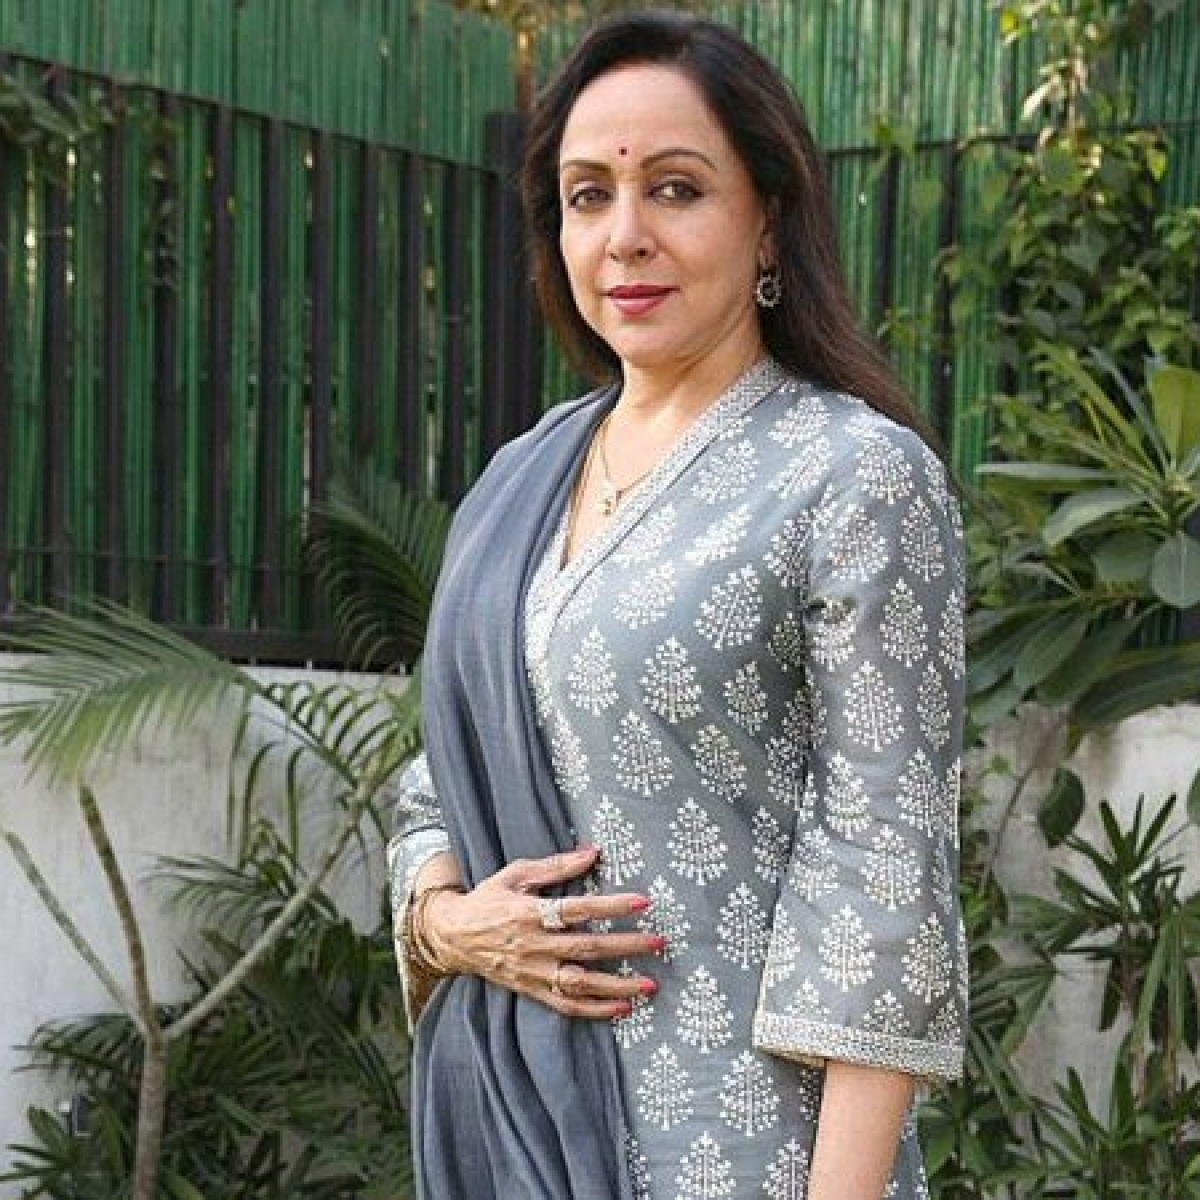 After Jaya Bachchan's suggestion to lynch rapists, Hema Malini says 'culprits' should be kept in jail permanently